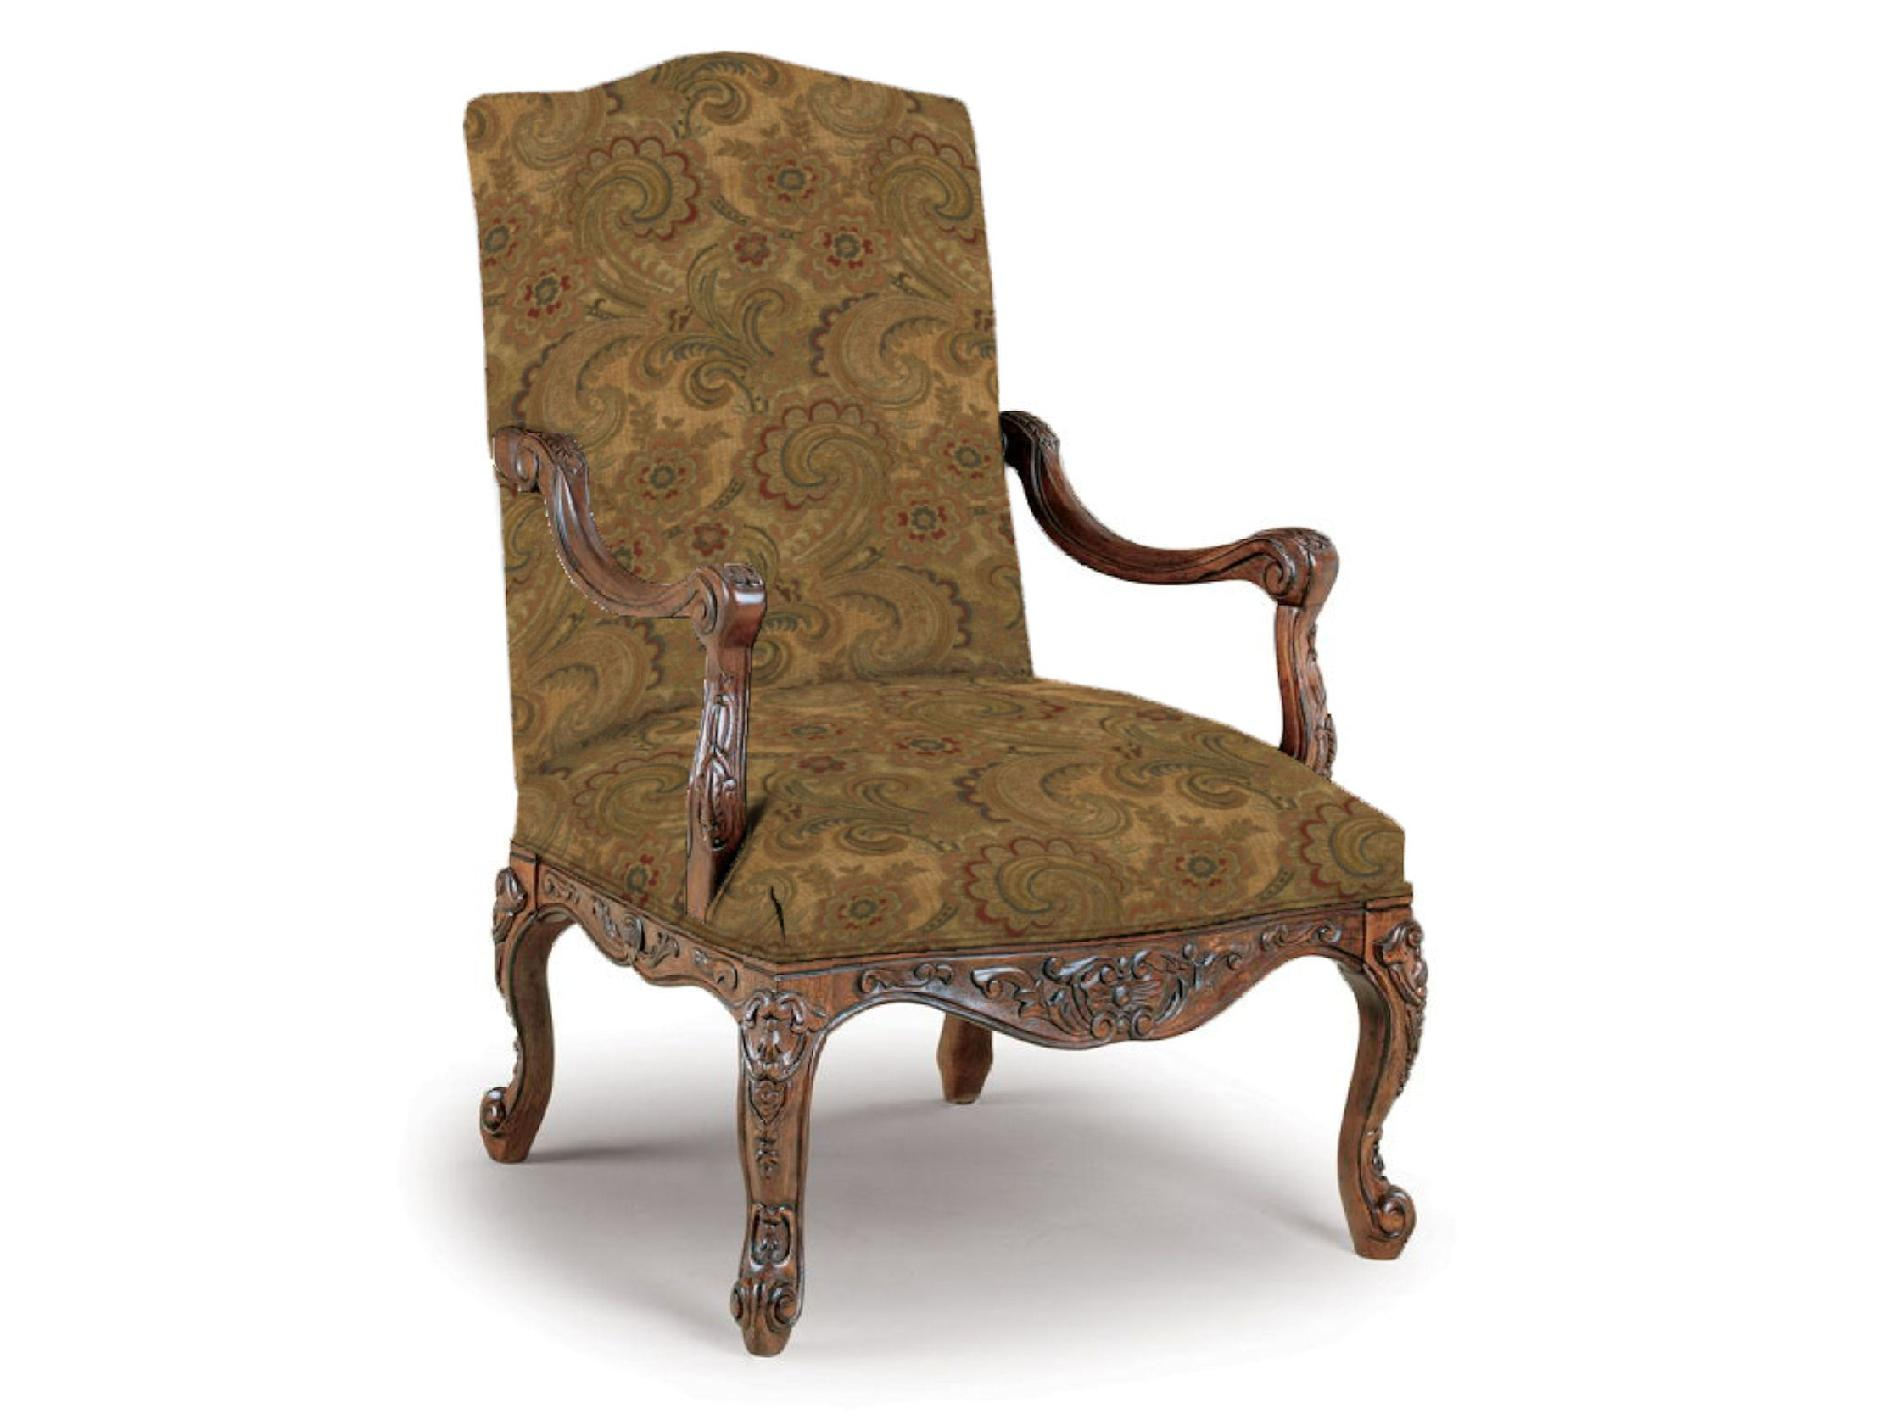 french provincial adele occasional chair your covers inc. sun valley ca 91352 best home furnishings beige and tan paisley wade show